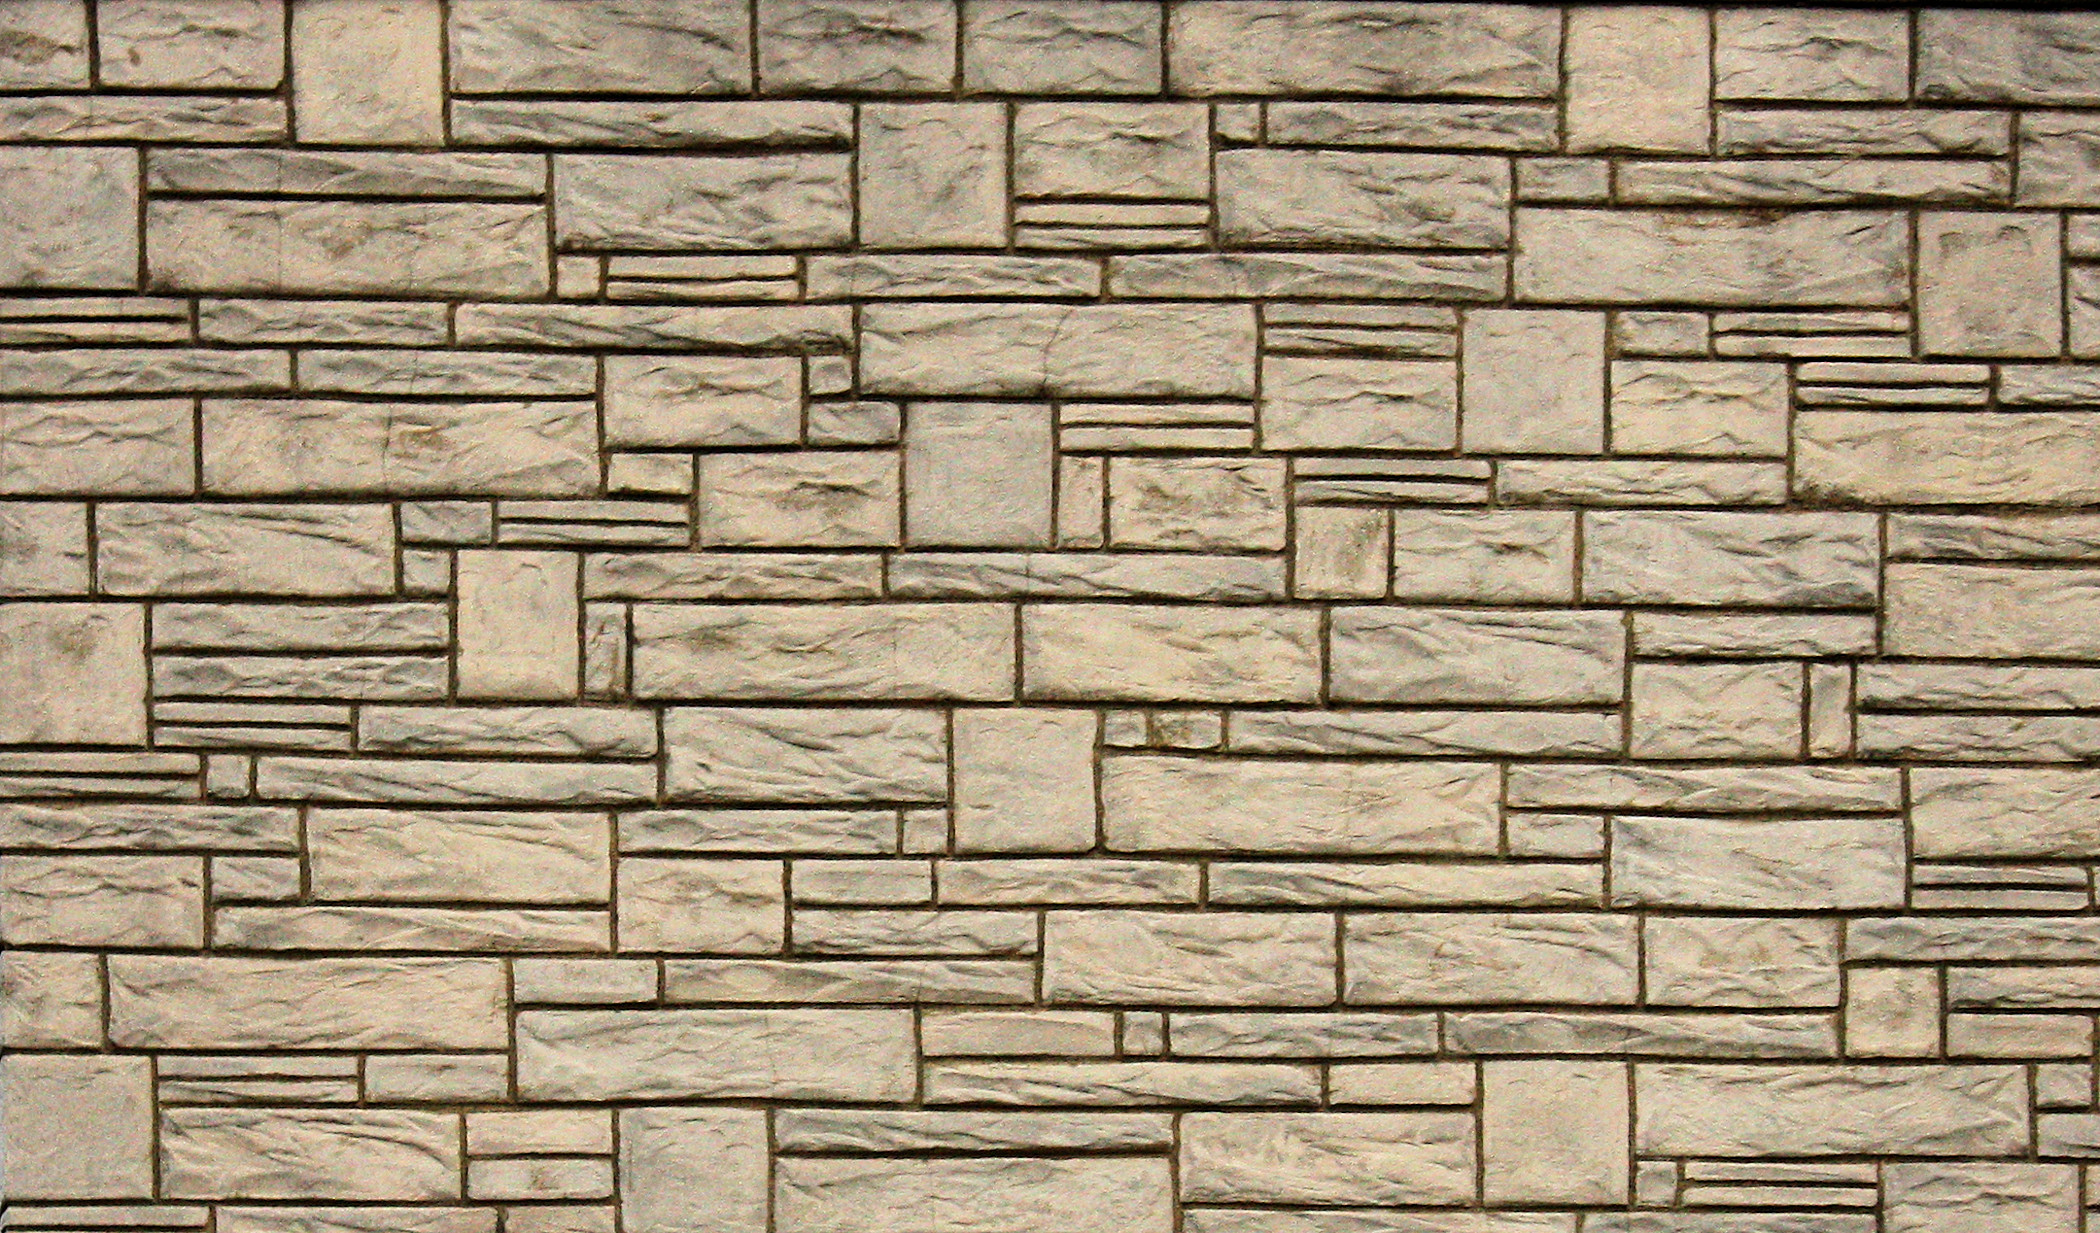 stone wall background stone wallpaper wallpaper stone stonewall stone